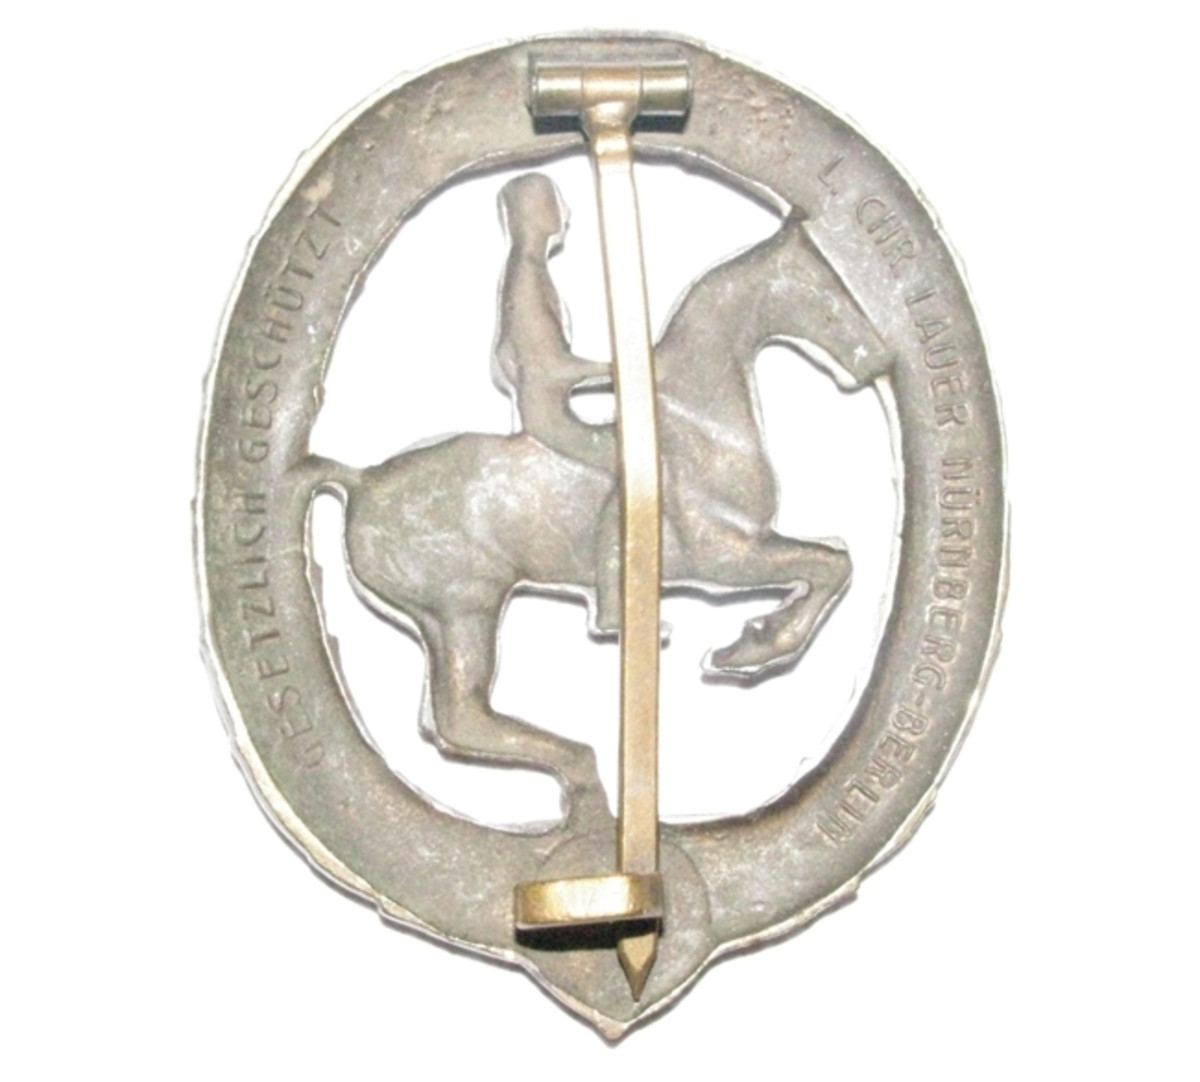 This bronze badge was manufactured by Lauer company. The reverse features a broad attachment pin and hook assembly.